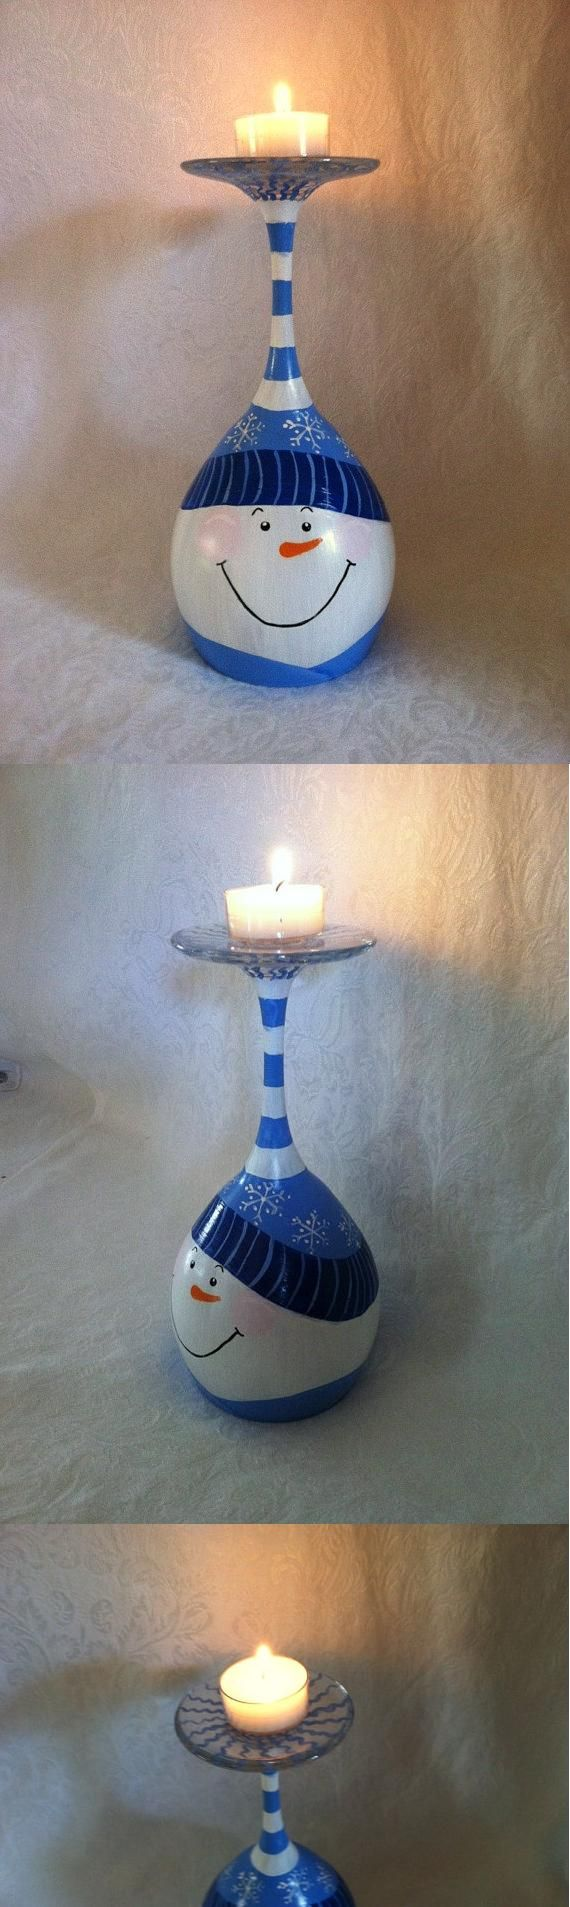 Snowman Candle Stand - Just in time for winter, this unique candle stand is hand painted on an up-side-down wine glass. Perfect for decorating a wine bar or lighting up a space in your home with a smiling snowman. Painted with non-toxic acrylic glass paint and heat set to preserve the design. Tea light included. ($20.00)